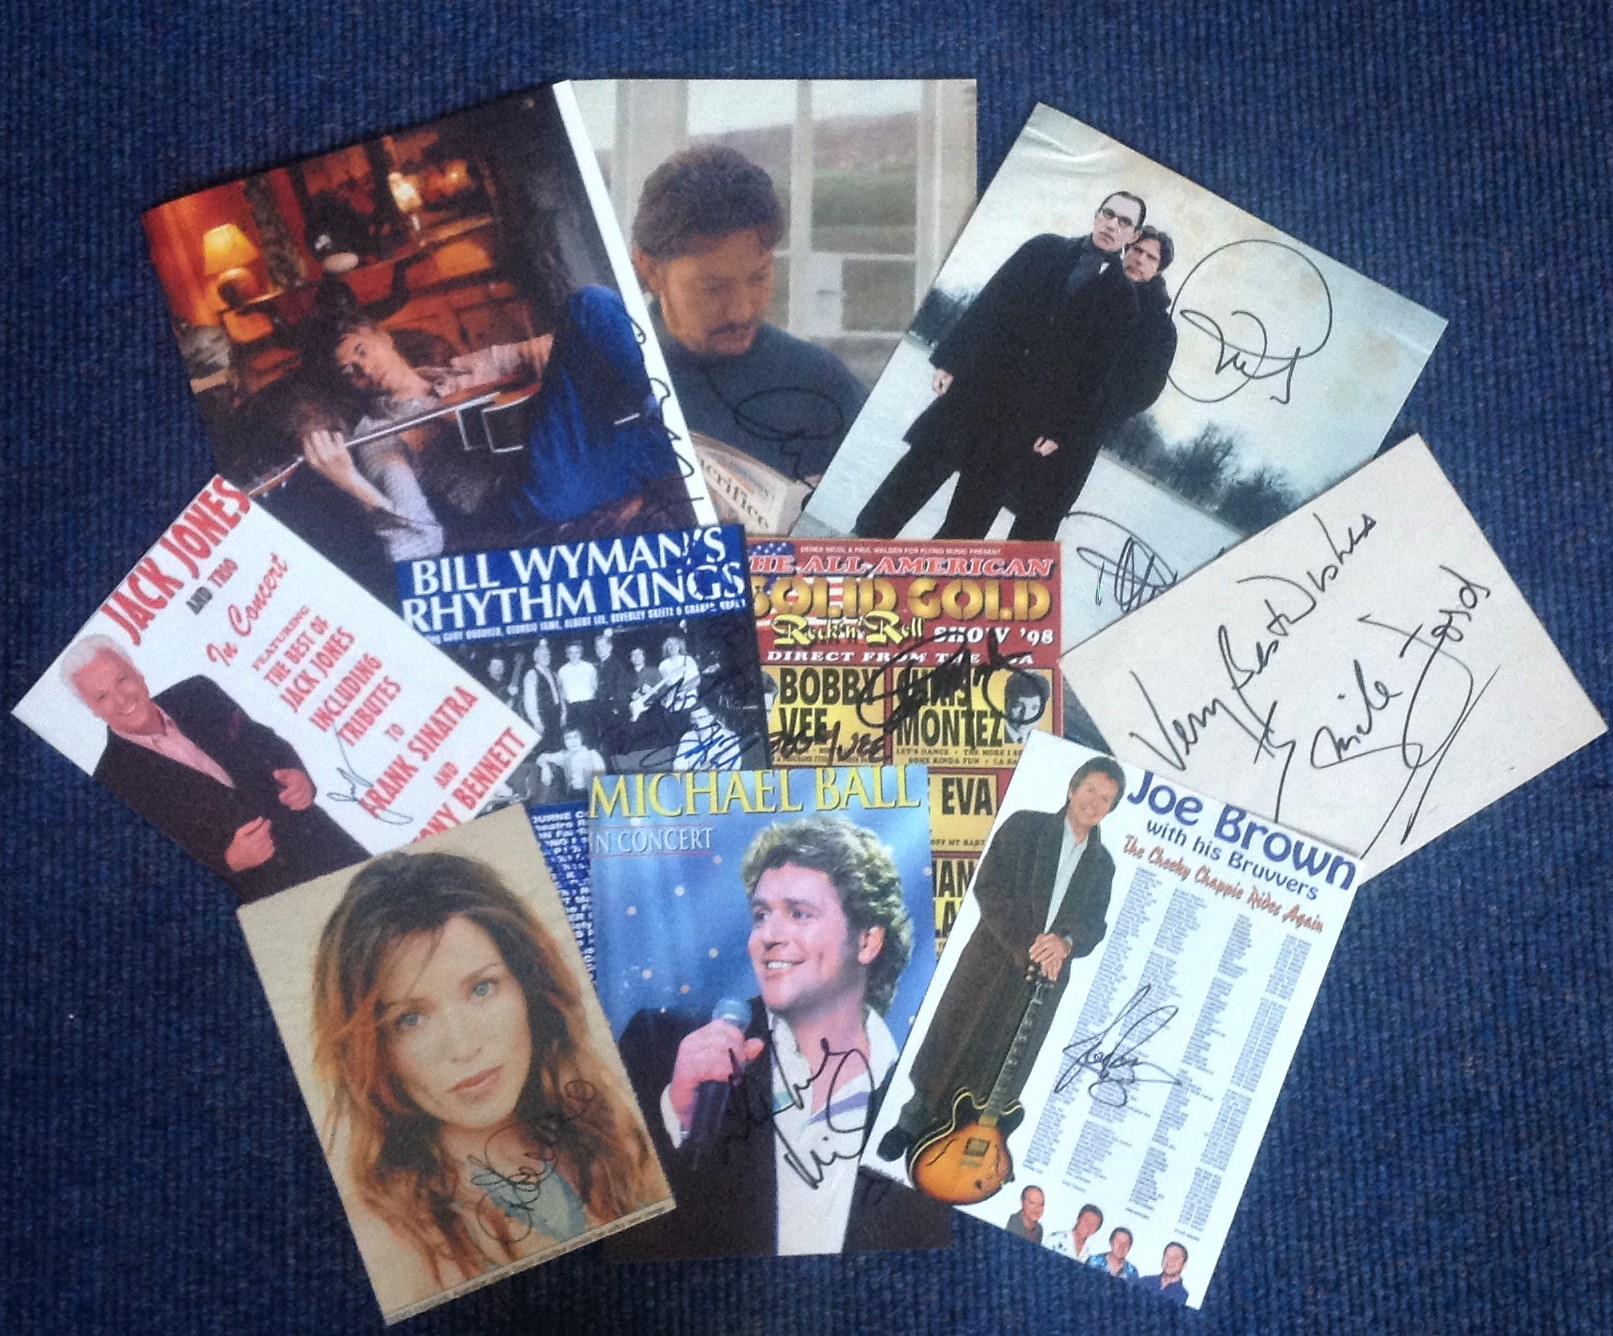 Lot 23 - Music signed collection. 10 items assorted flyers and newspaper photos. Some of names included are